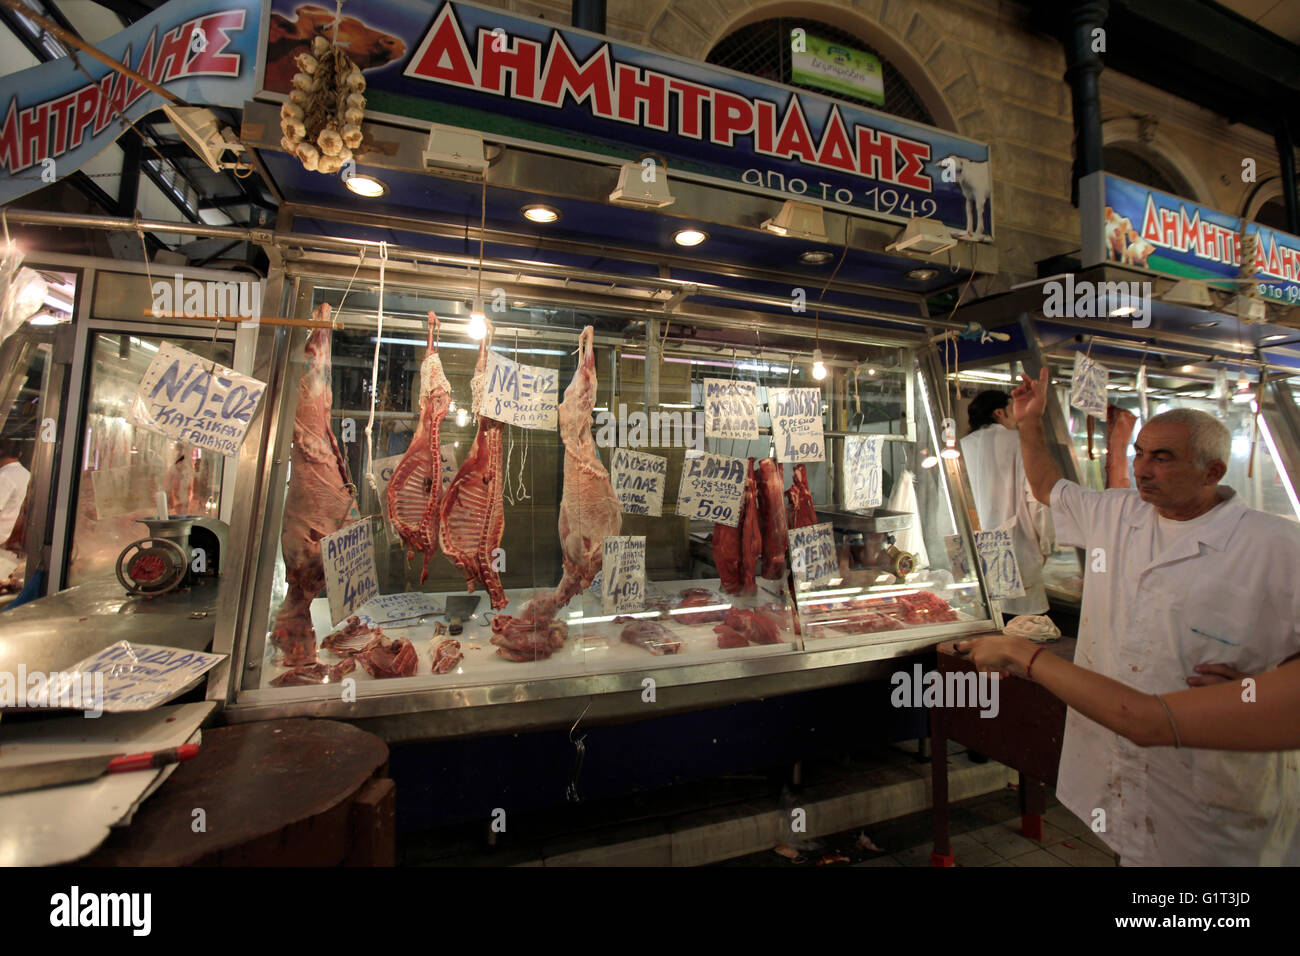 a meat seller/ vendor inside the central market or Athens Dimotiki Agora Public Market in Athens greece - Stock Image